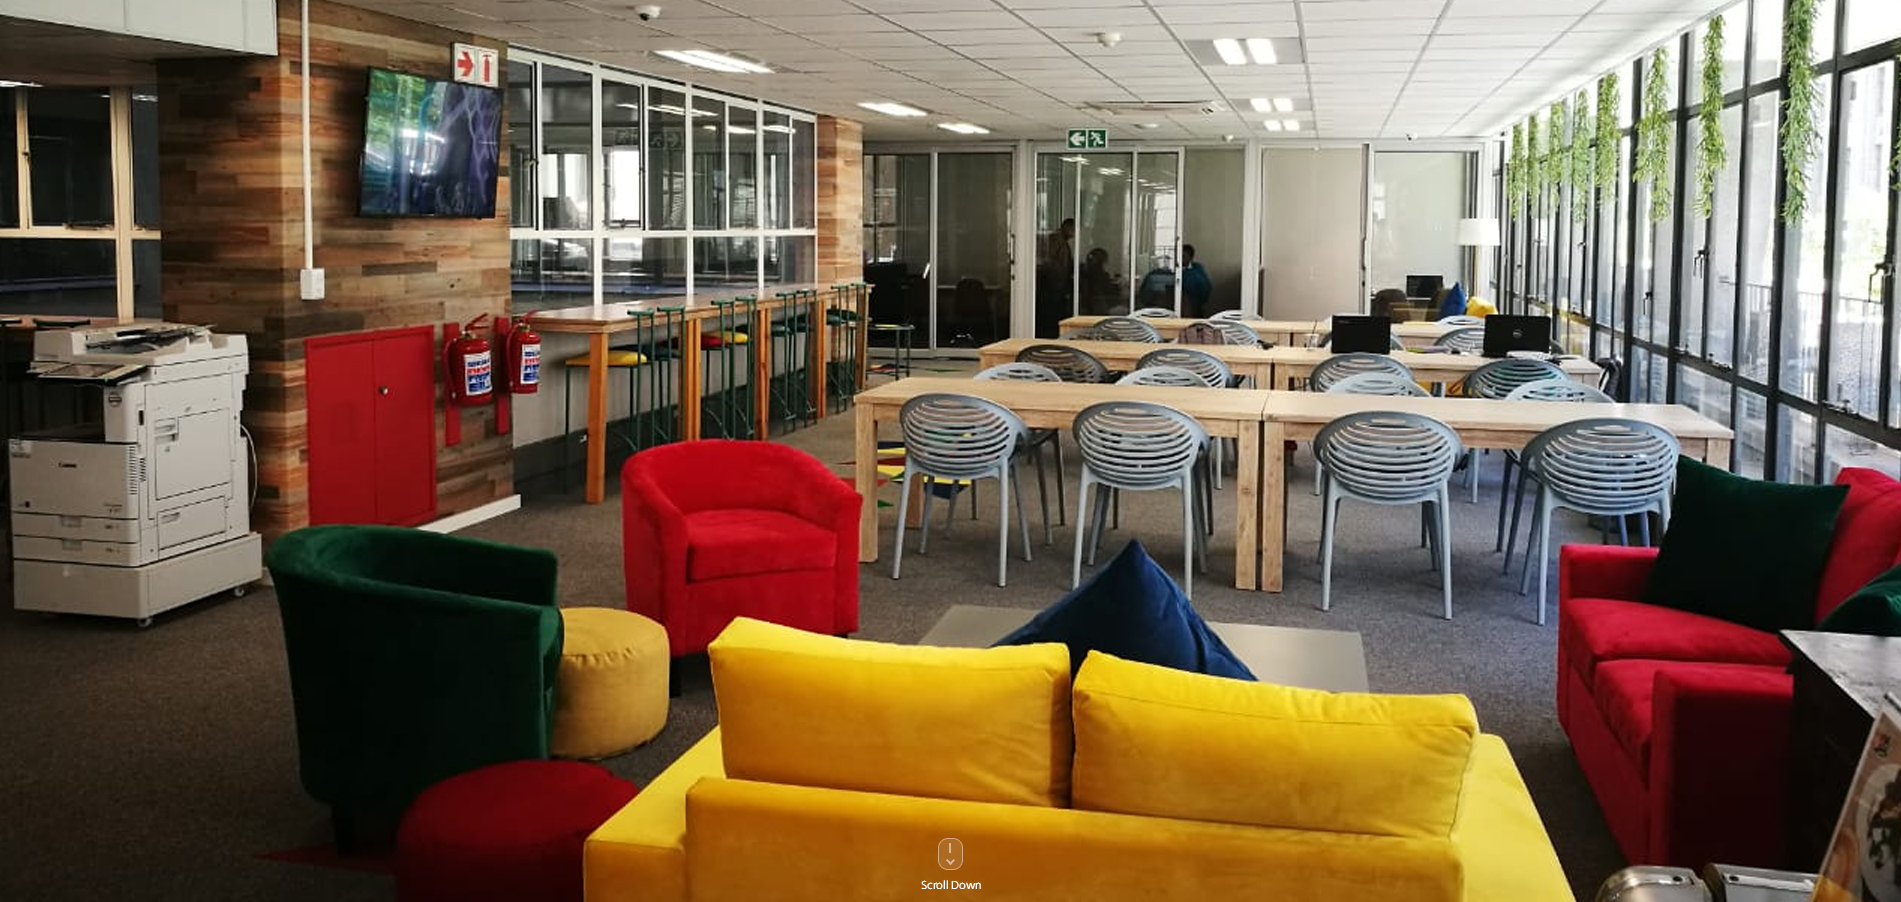 Open office work space with chairs, tables and couches